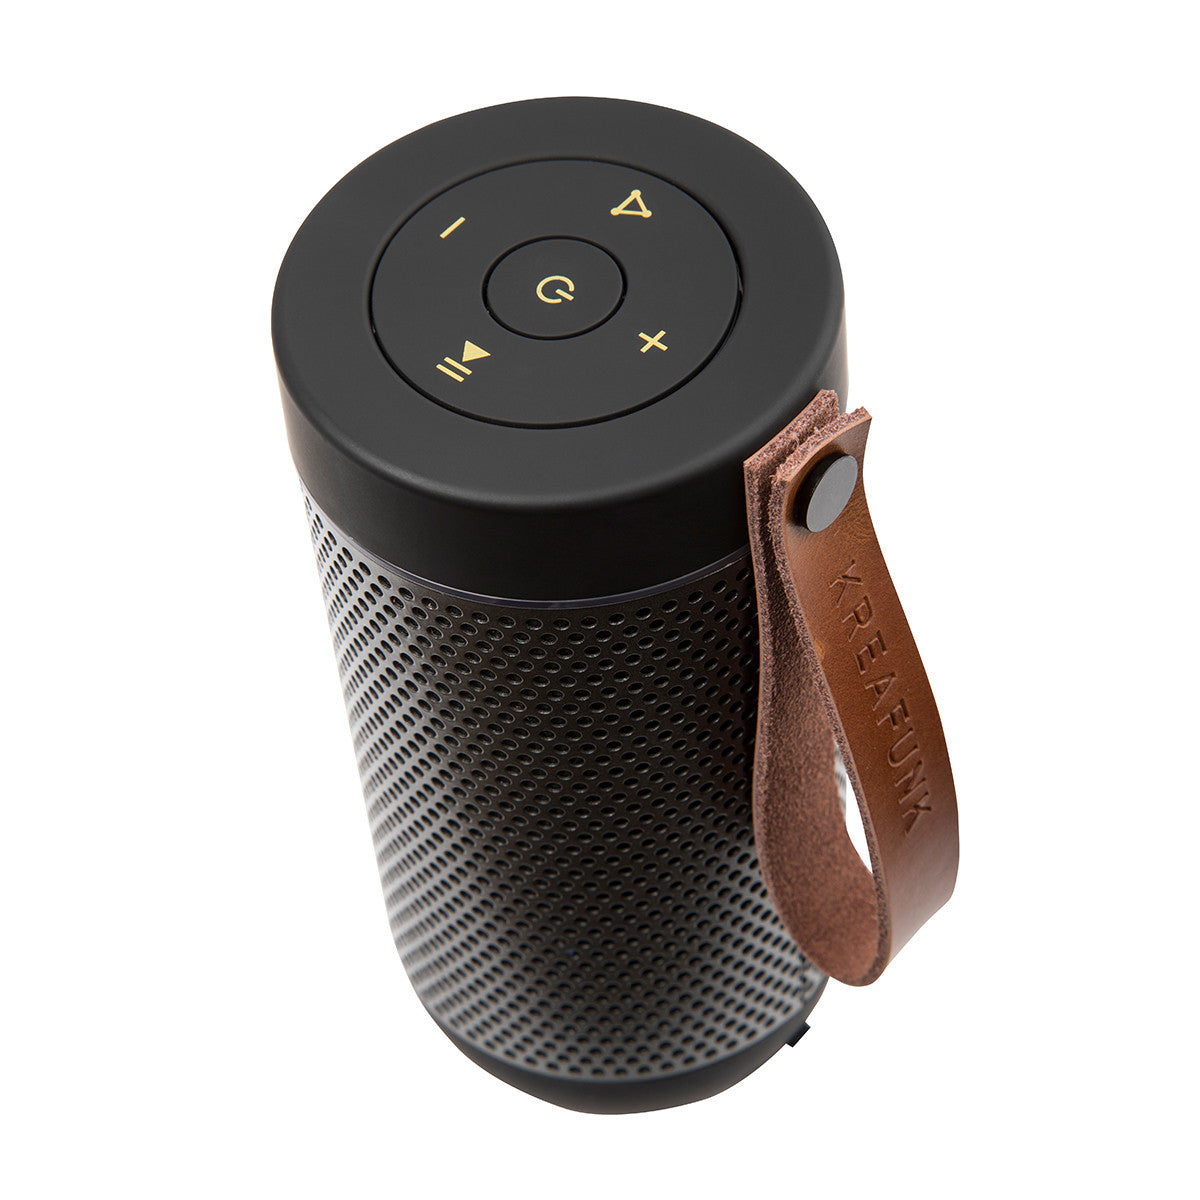 KREAFUNK Afunk Black Edition Bluetooth Speaker